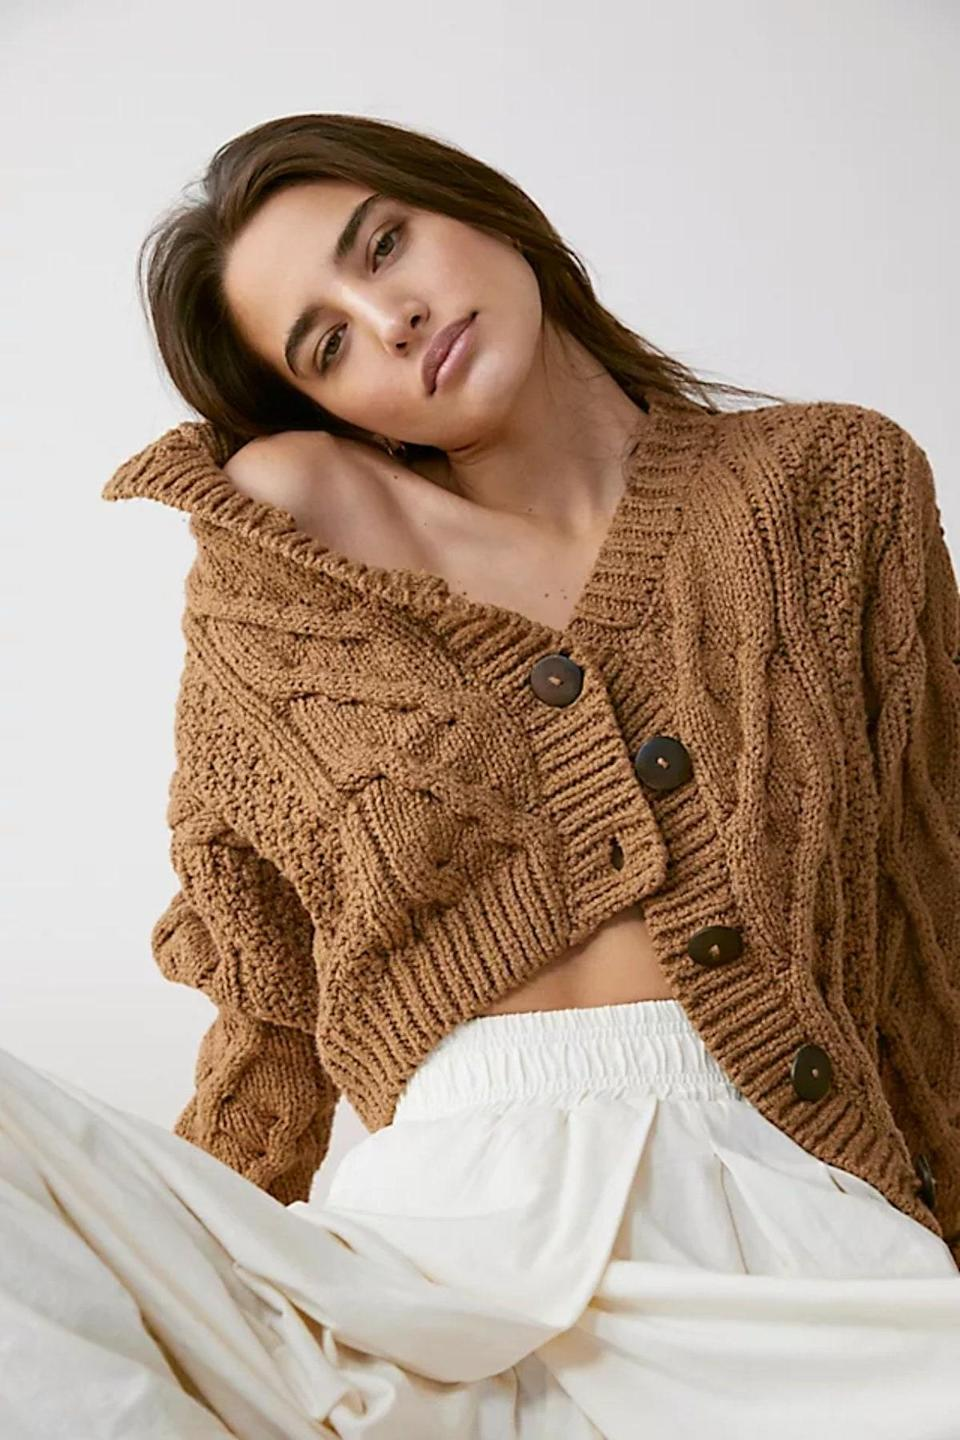 """There's no way around it: Free People has mastered the art of the """"slouch,"""" as evidenced by this relaxed caramel cardigan that you can throw over just about any dress or bottom in your wardrobe. $148, Free People. <a href=""""https://www.freepeople.com/shop/bonfire-cardi/?category=sweaters&color=023&type=REGULAR&quantity=1"""" rel=""""nofollow noopener"""" target=""""_blank"""" data-ylk=""""slk:Get it now!"""" class=""""link rapid-noclick-resp"""">Get it now!</a>"""